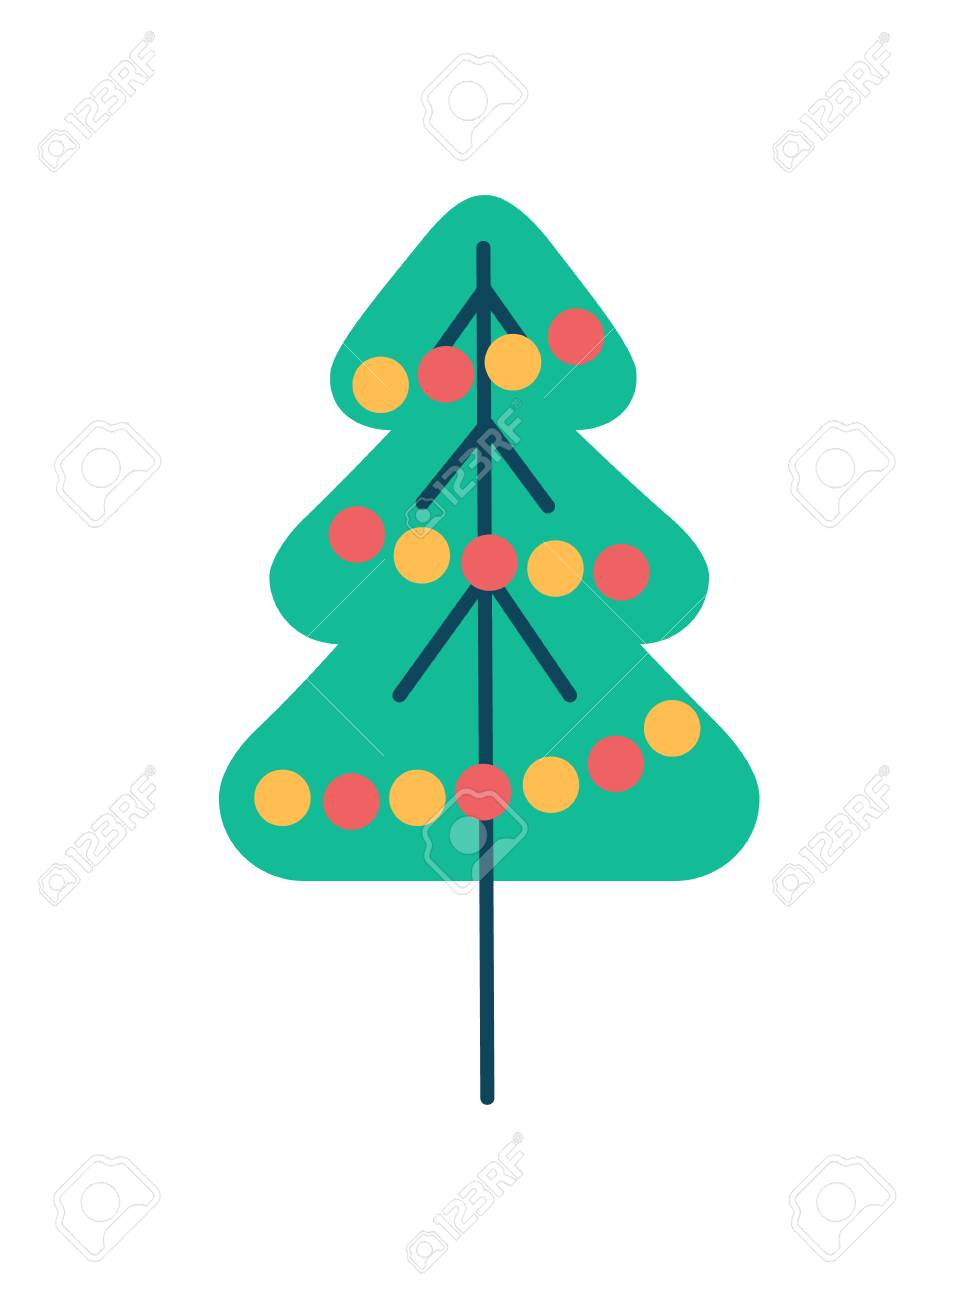 new year tree icon with color balls garland vector royalty free cliparts vectors and stock illustration image 93560001 123rf com